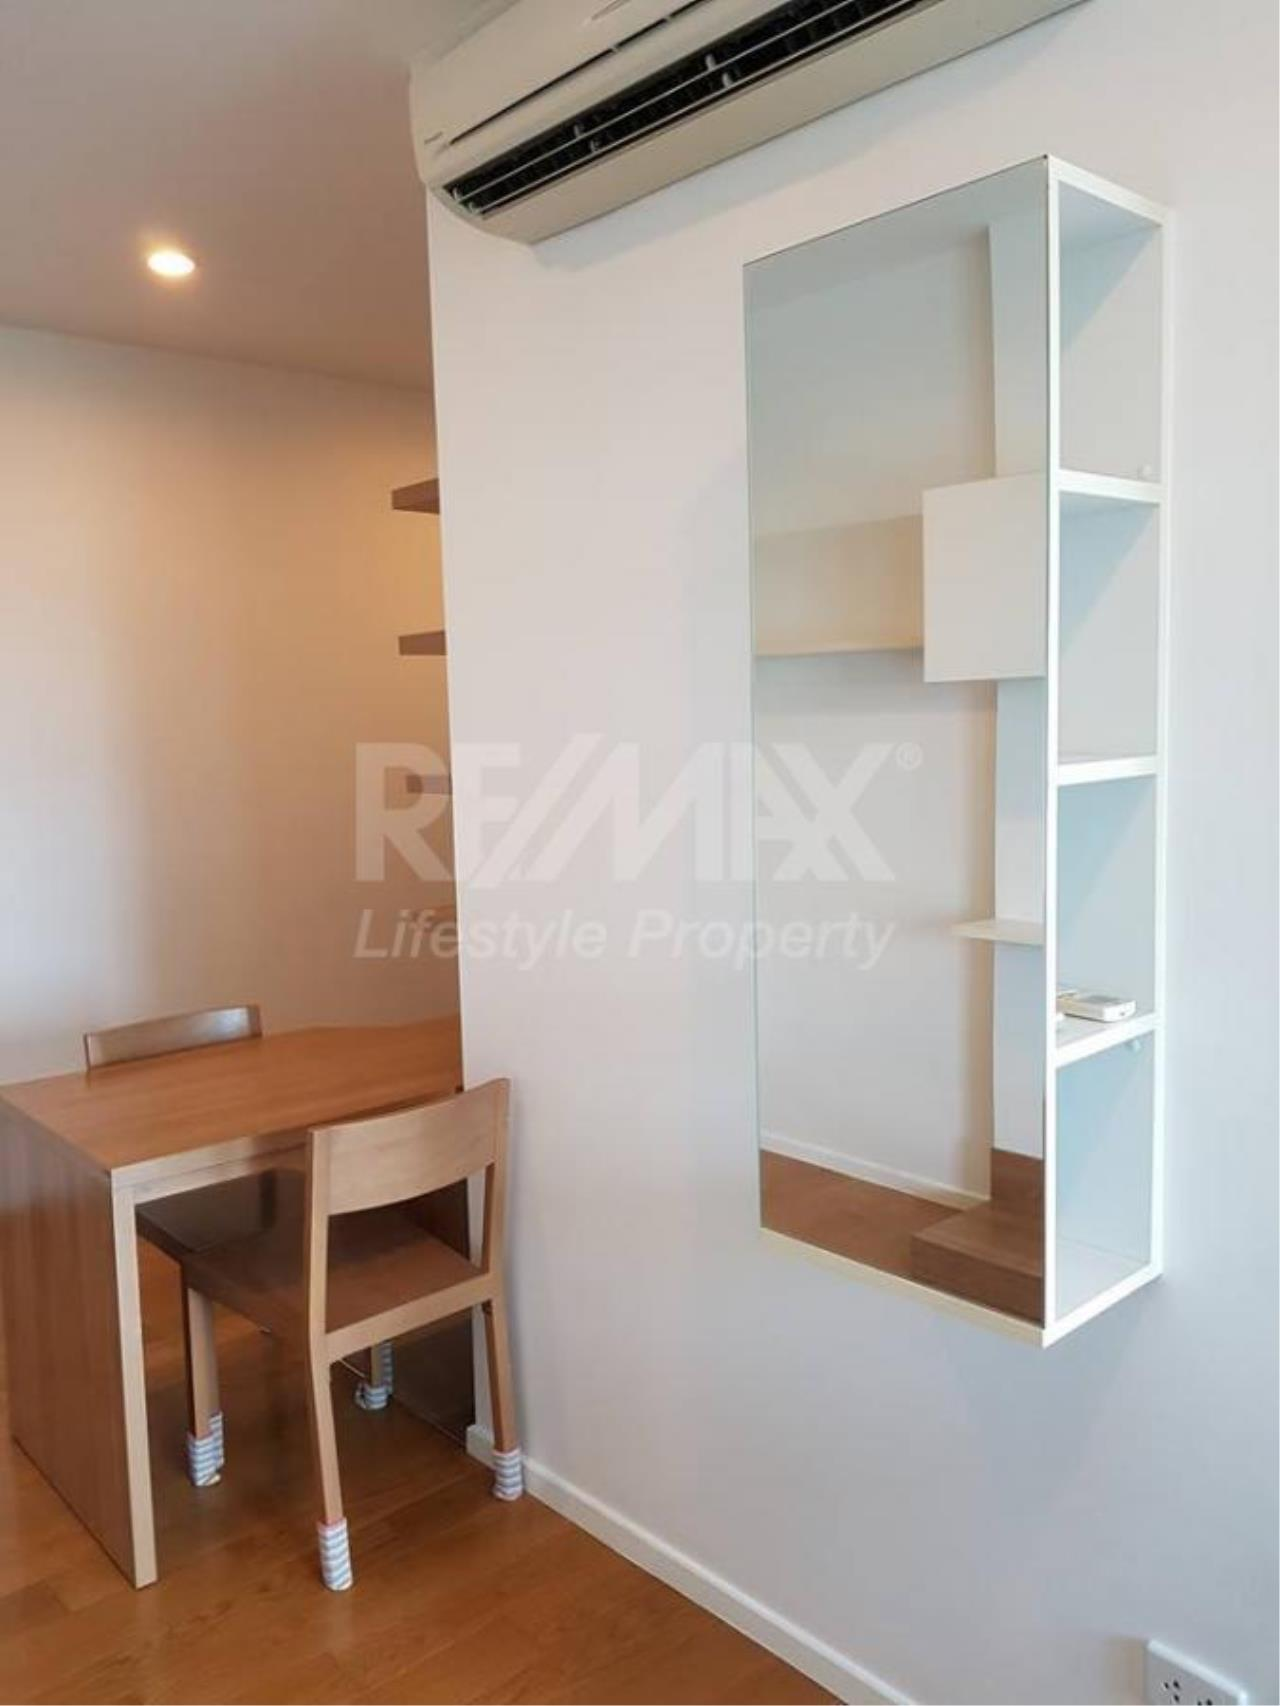 RE/MAX LifeStyle Property Agency's Blocs 77 5